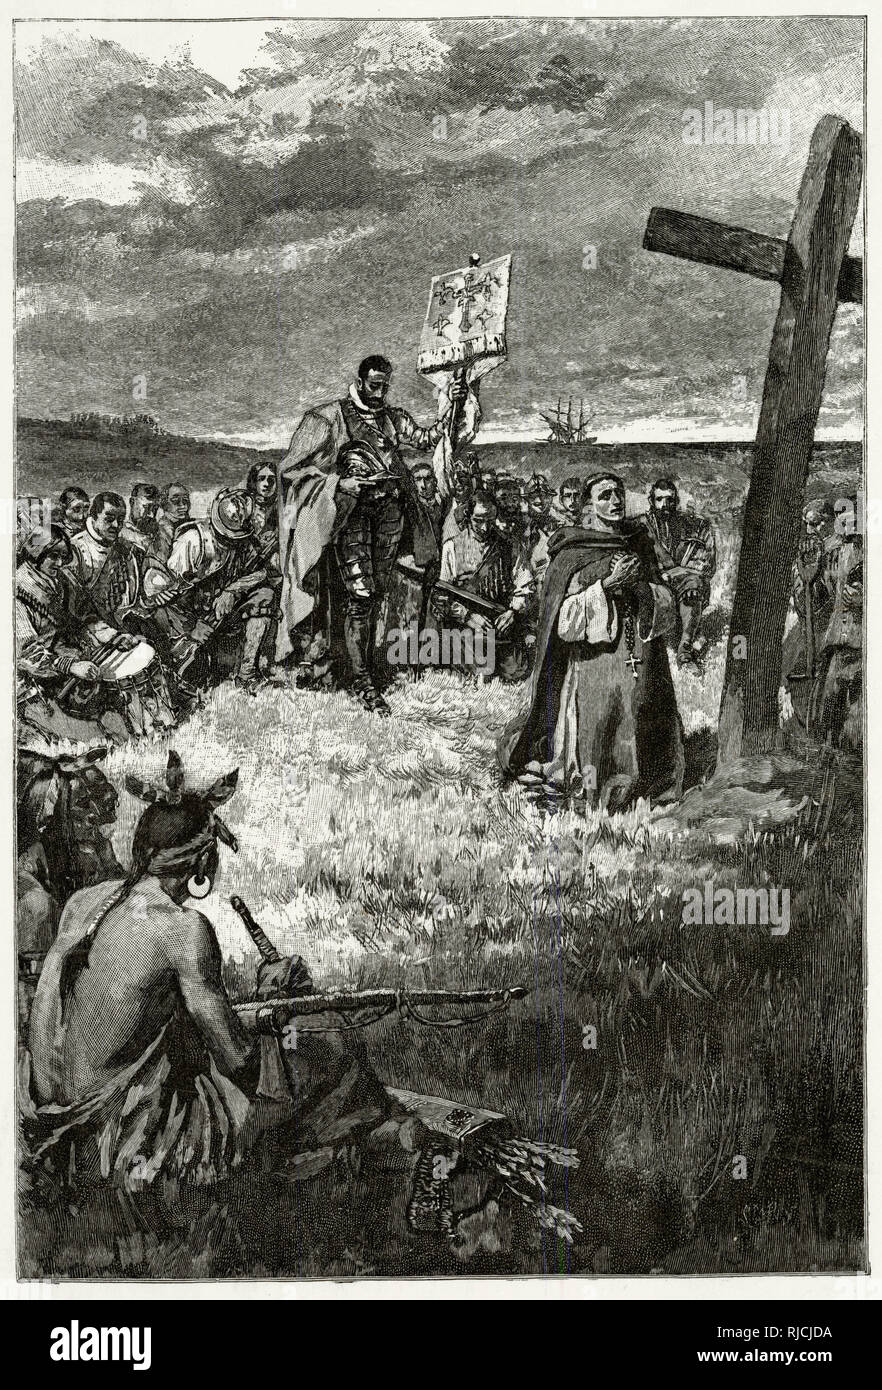 Jacques Cartier sets up a cross at Gaspe. On his exploration of Canada for France, Breton explorer Cartier lands at Honguedo, and is met with the St. Lawrence Iroquoians. A priest kneels in worship in front of a 10 foot high cross Cartier had planted, and Cartier stands behind him, helmet in hand and head bowed, holding a French standard. All expedition members kneel behind him in prayer. 3 Iroquians sit watching the proceedings. Stock Photo